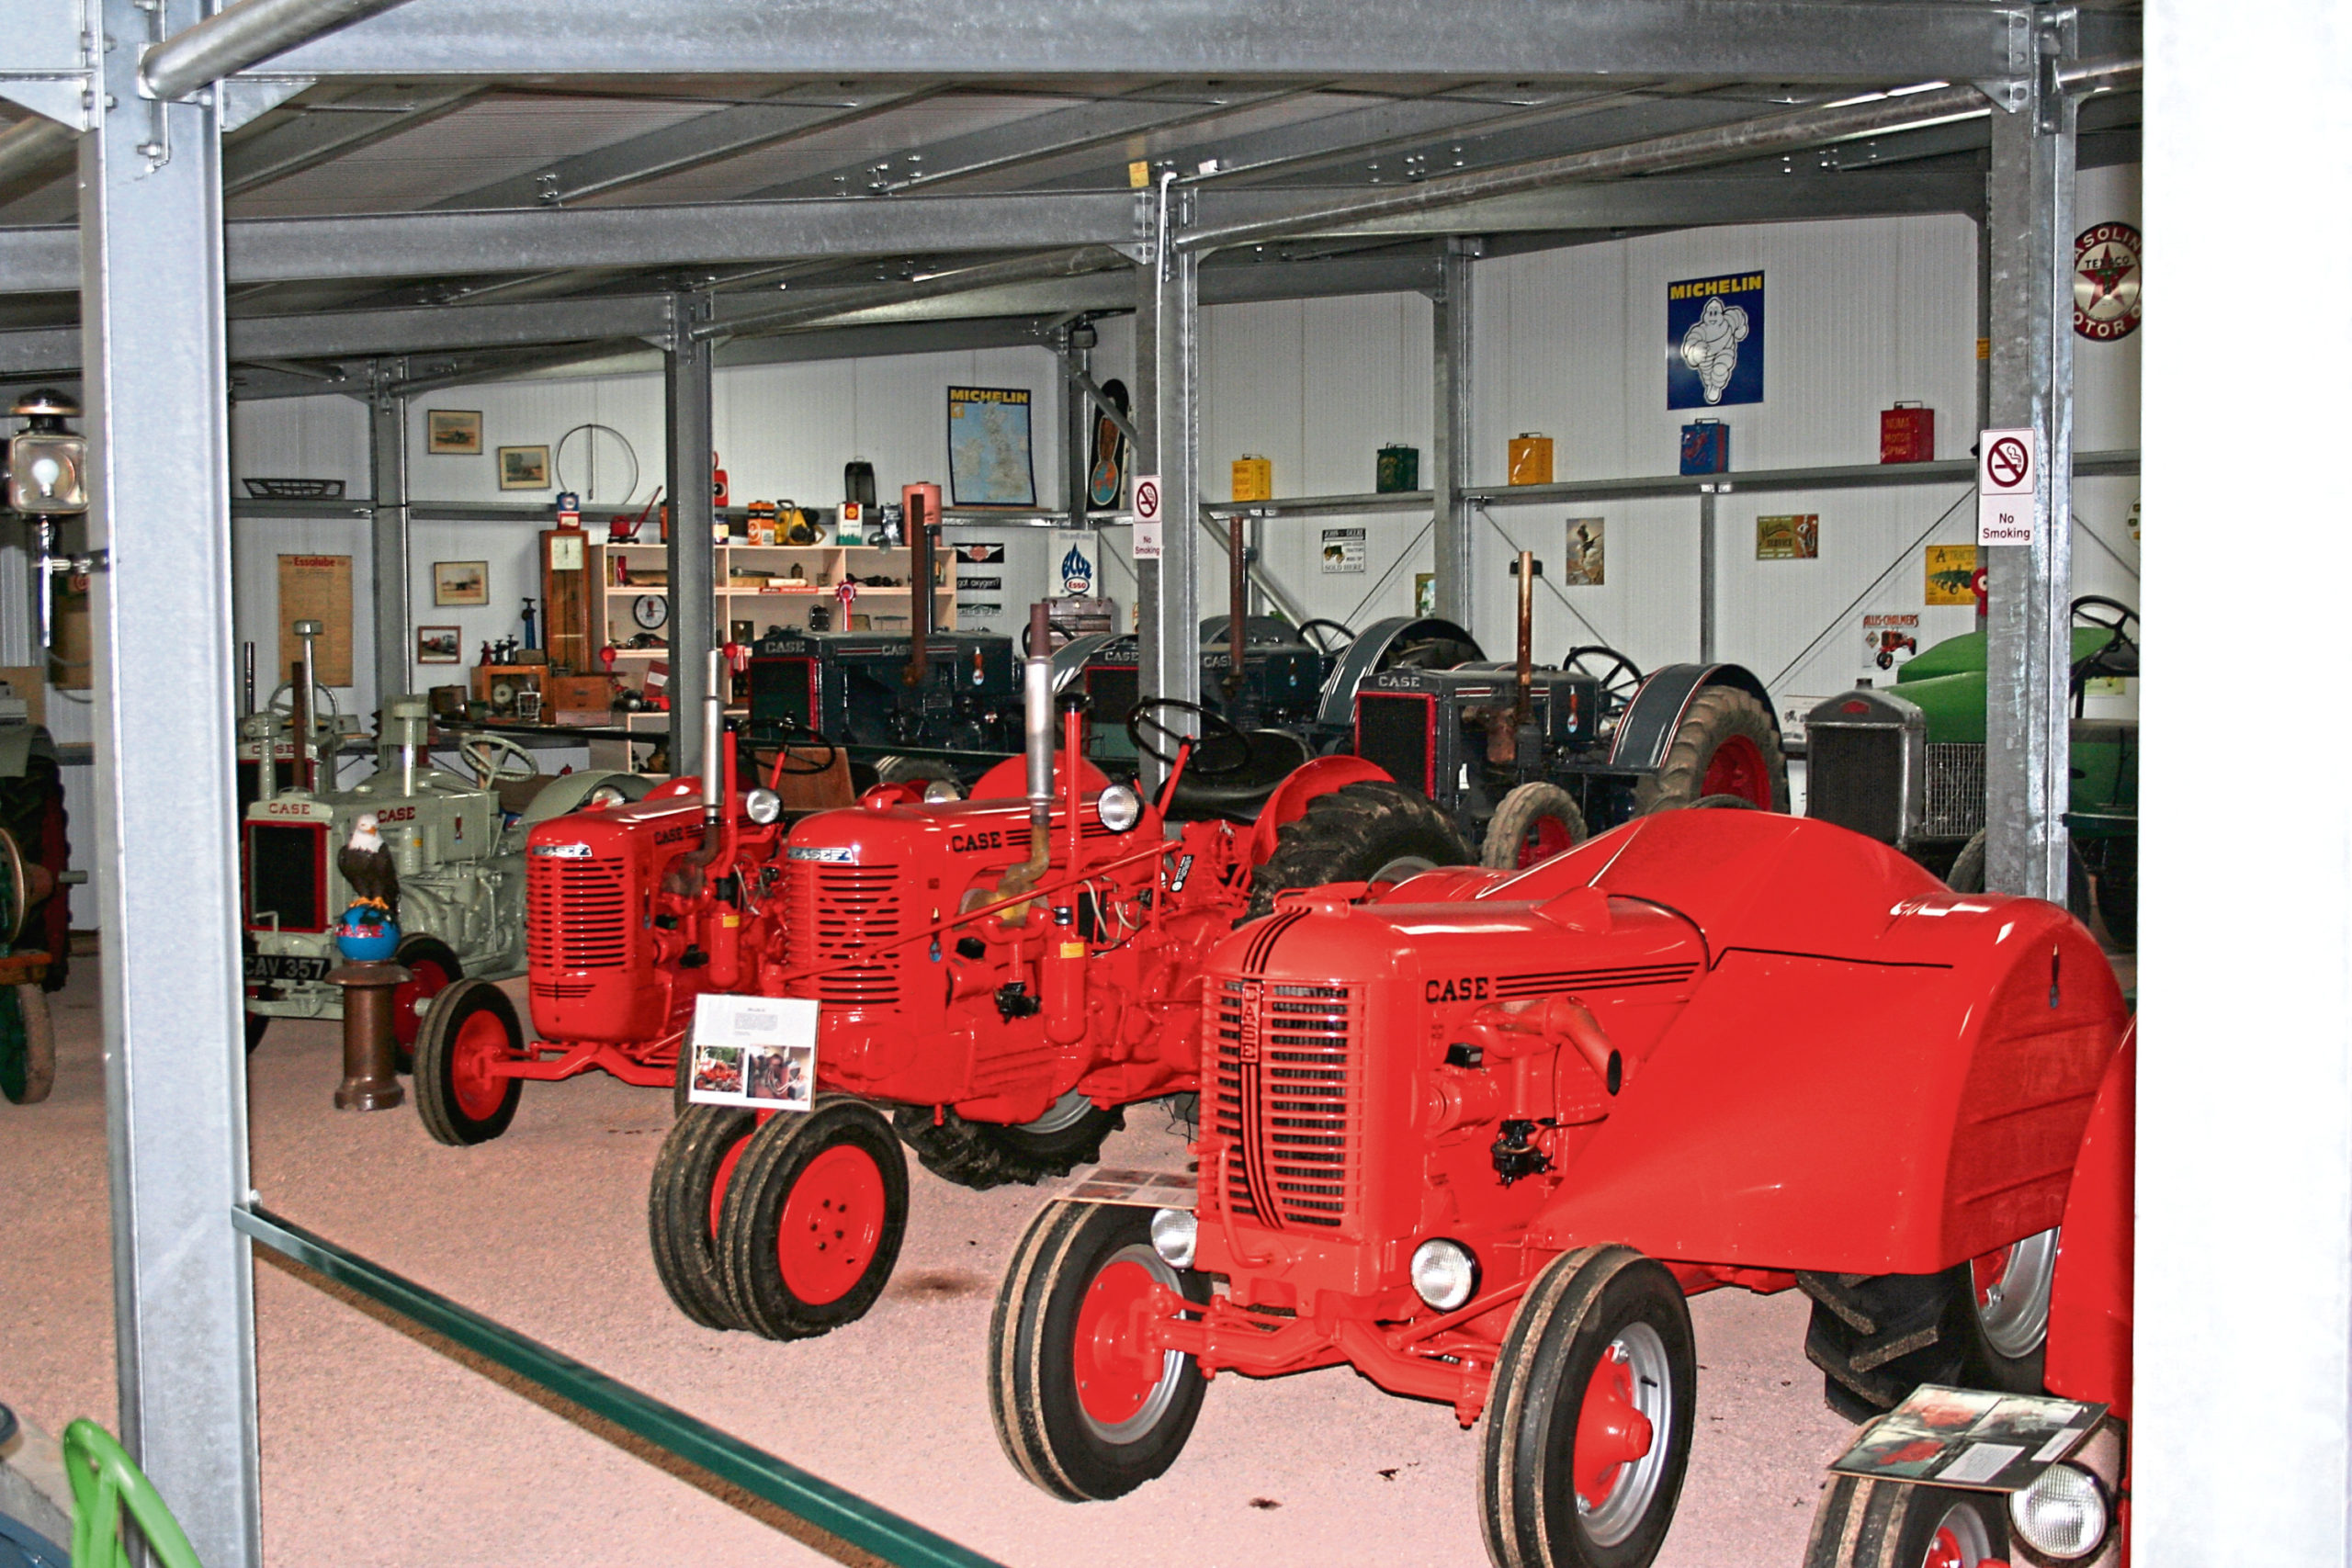 Some of the Flambeau Red painted Case tractors from the D series and S series ranges.